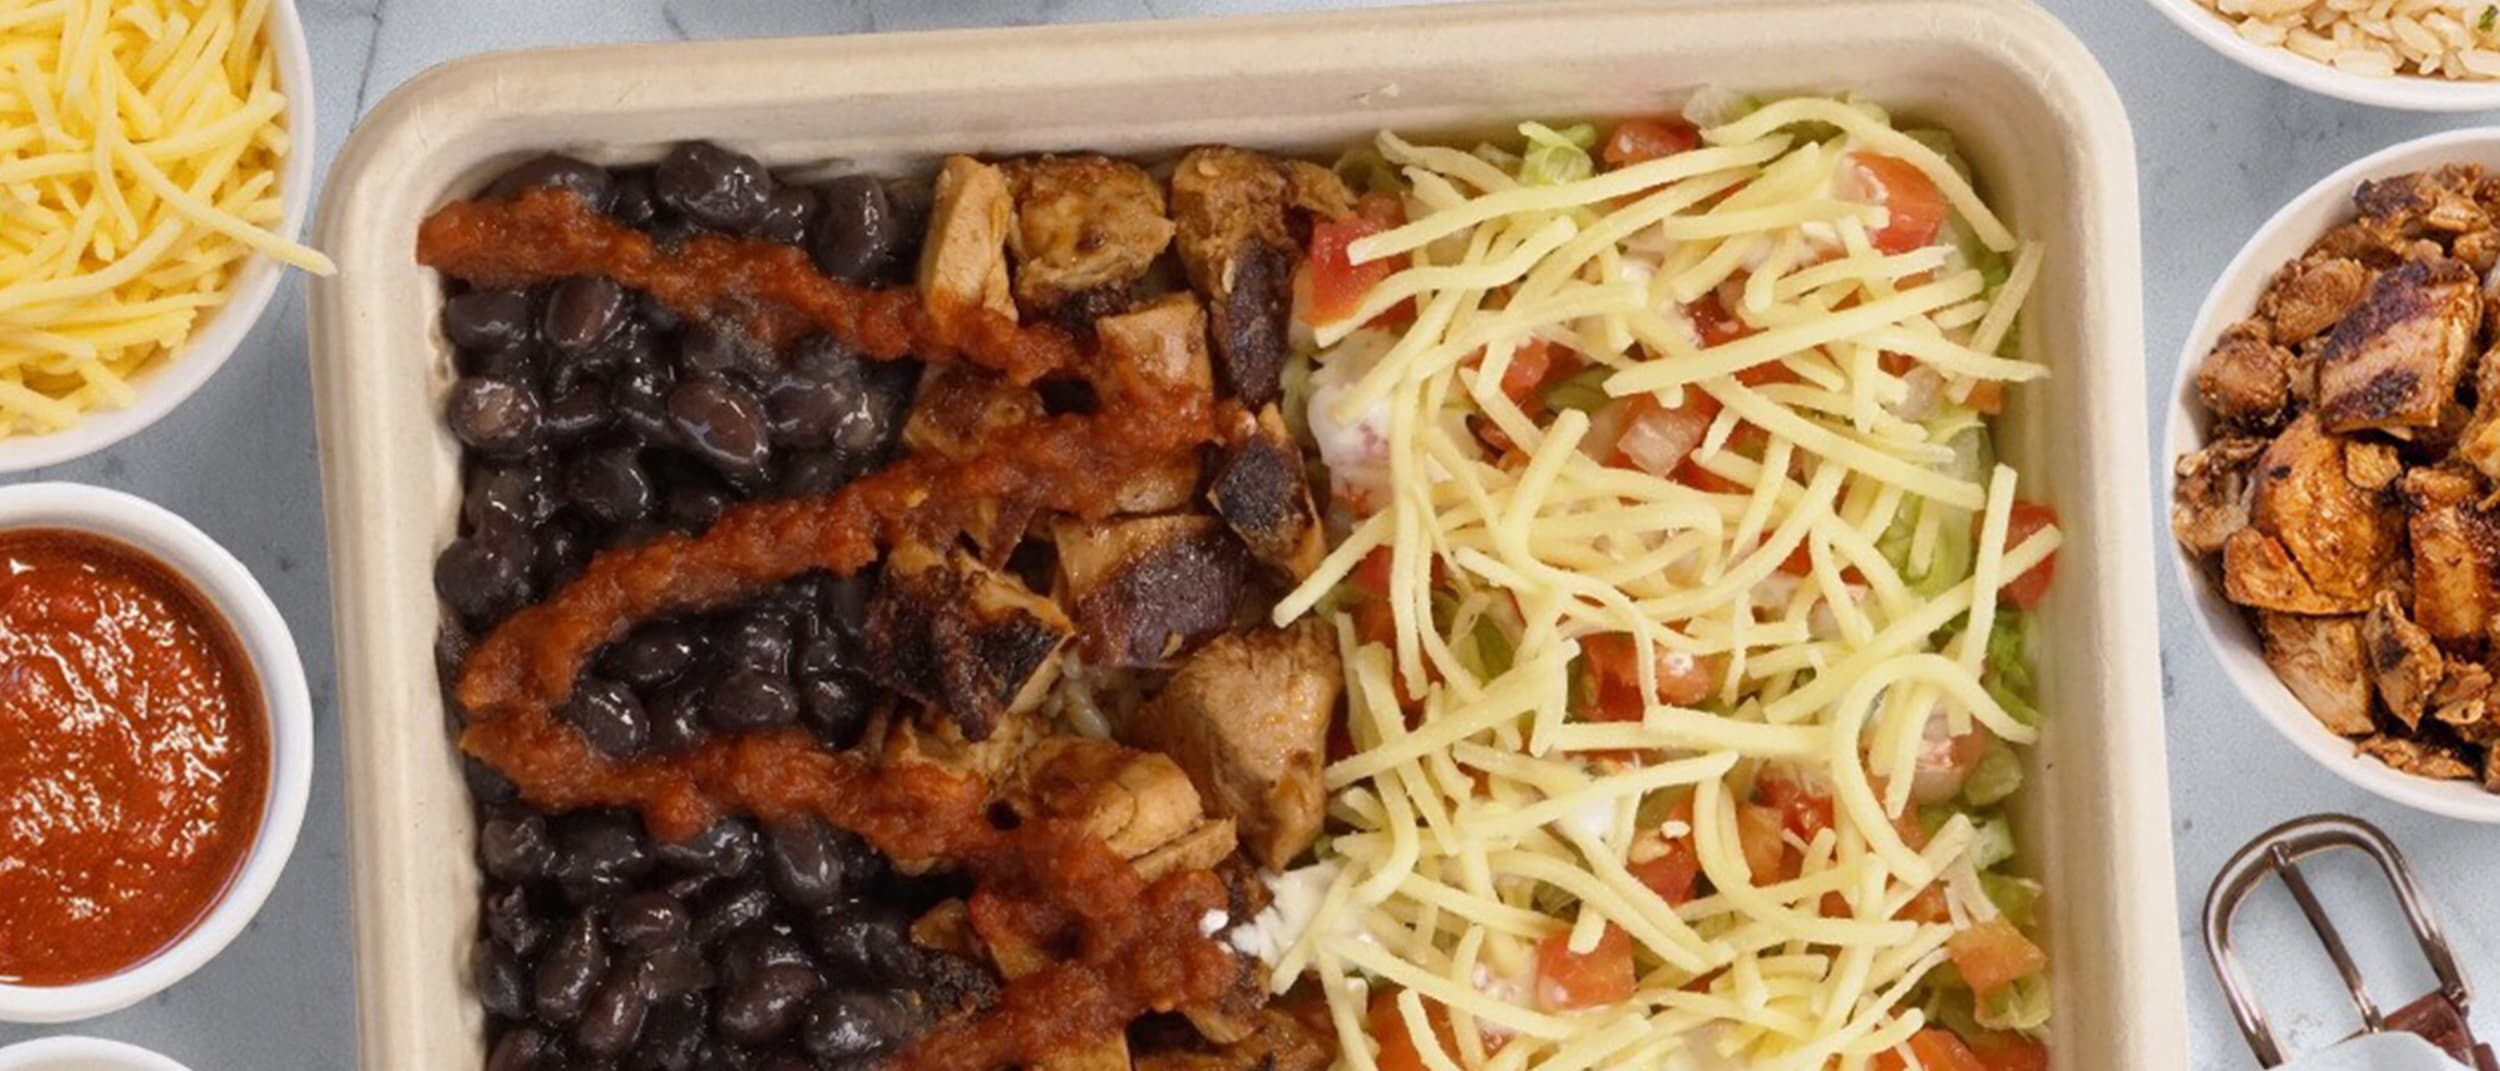 Mad Mex Naked Burrito: your New Year's resolution